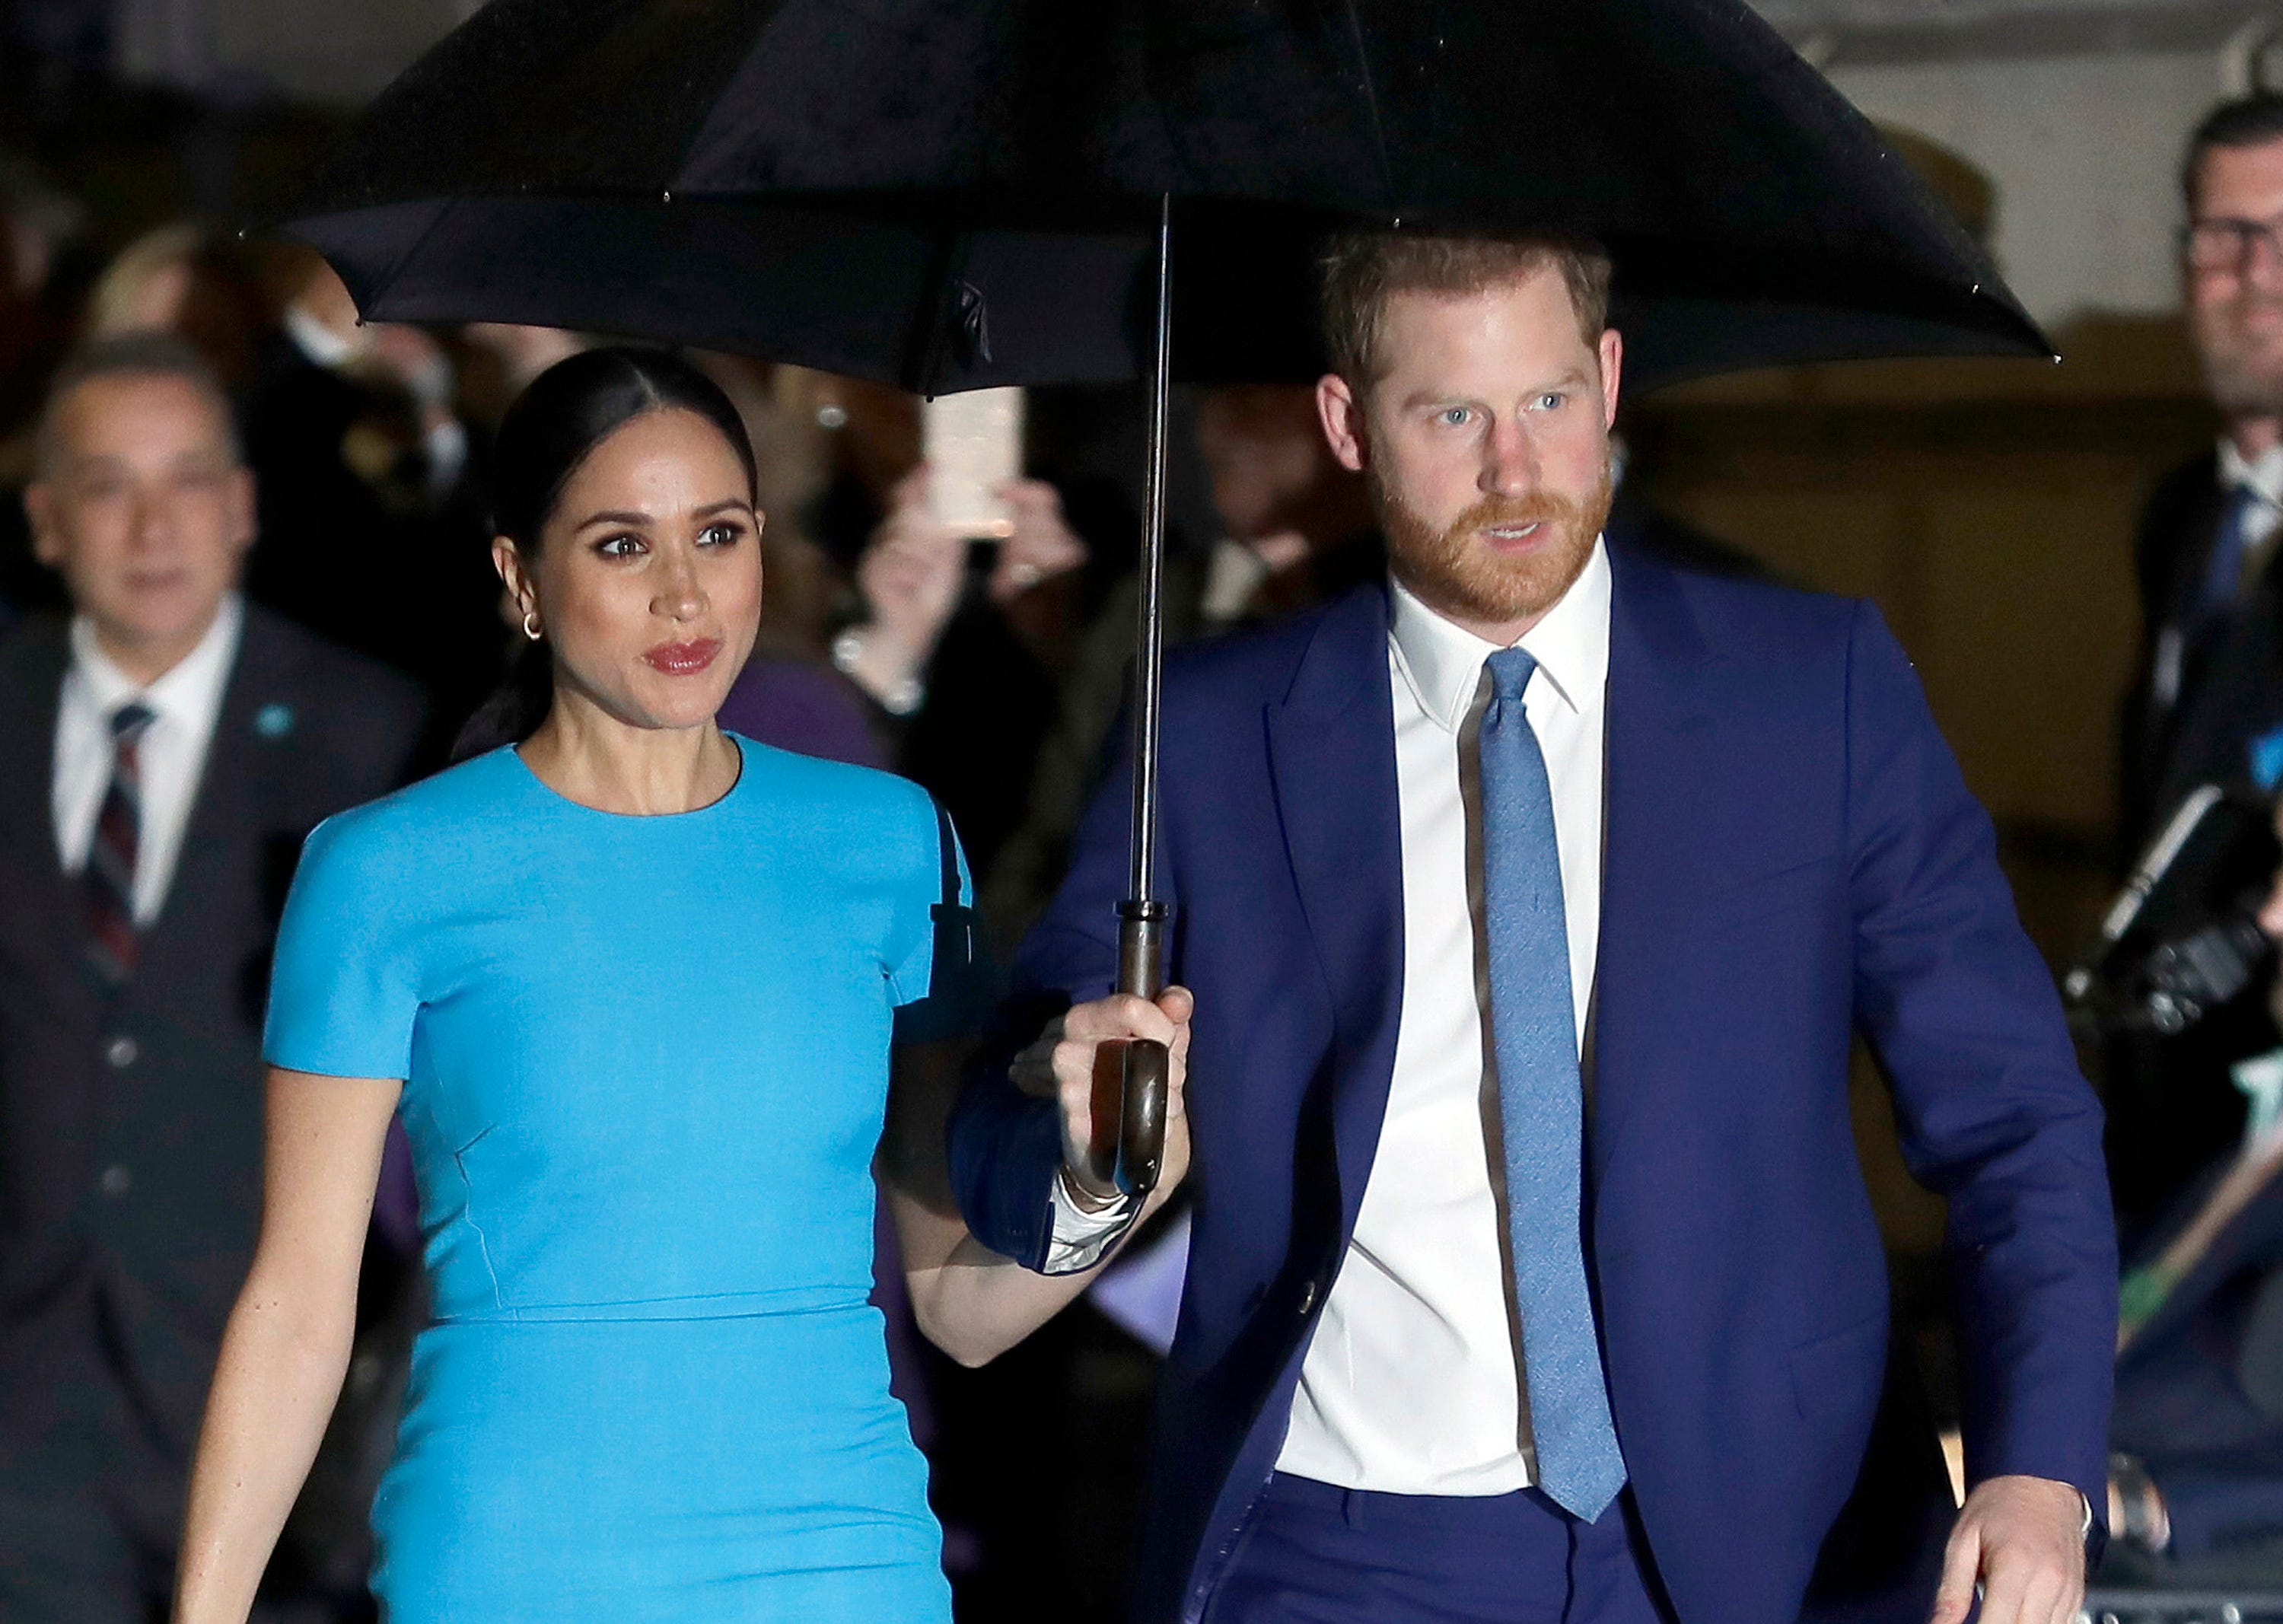 The Best Prince Harry And Meghan Markle Latest Photos